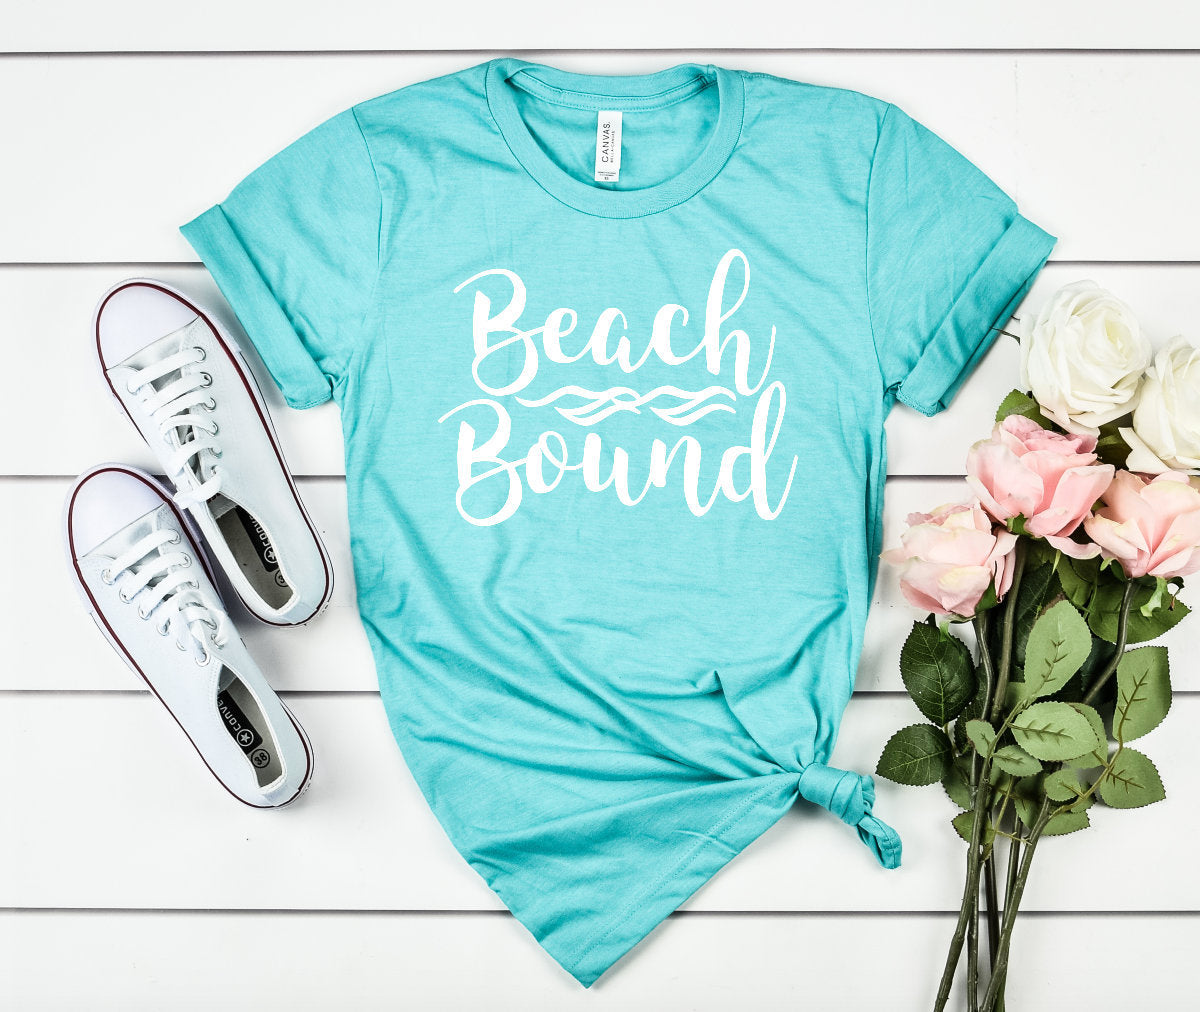 Beach Bound Heather Unisex T-shirt - Beach Shirts - Beach Vacation Shirt - Beach Trip Tees - Vacay Shirts - Cute Beach Tees